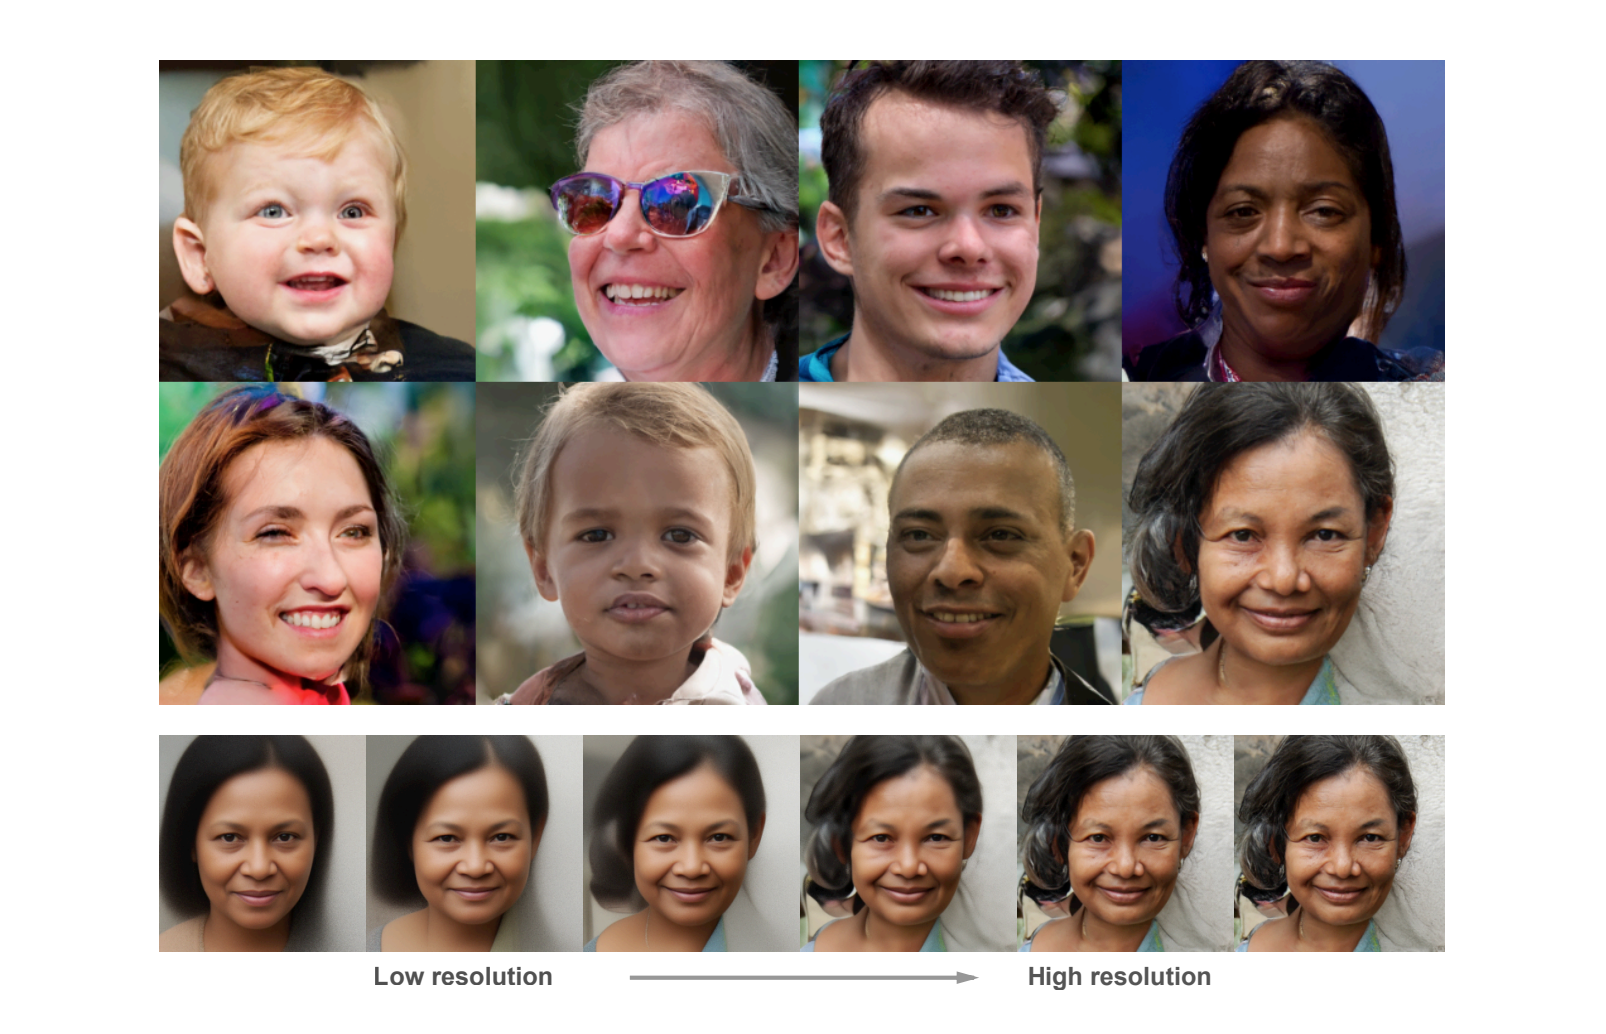 ICLR 2021 Submission: Deeper VAEs Excel on Natural Image Benchmarks